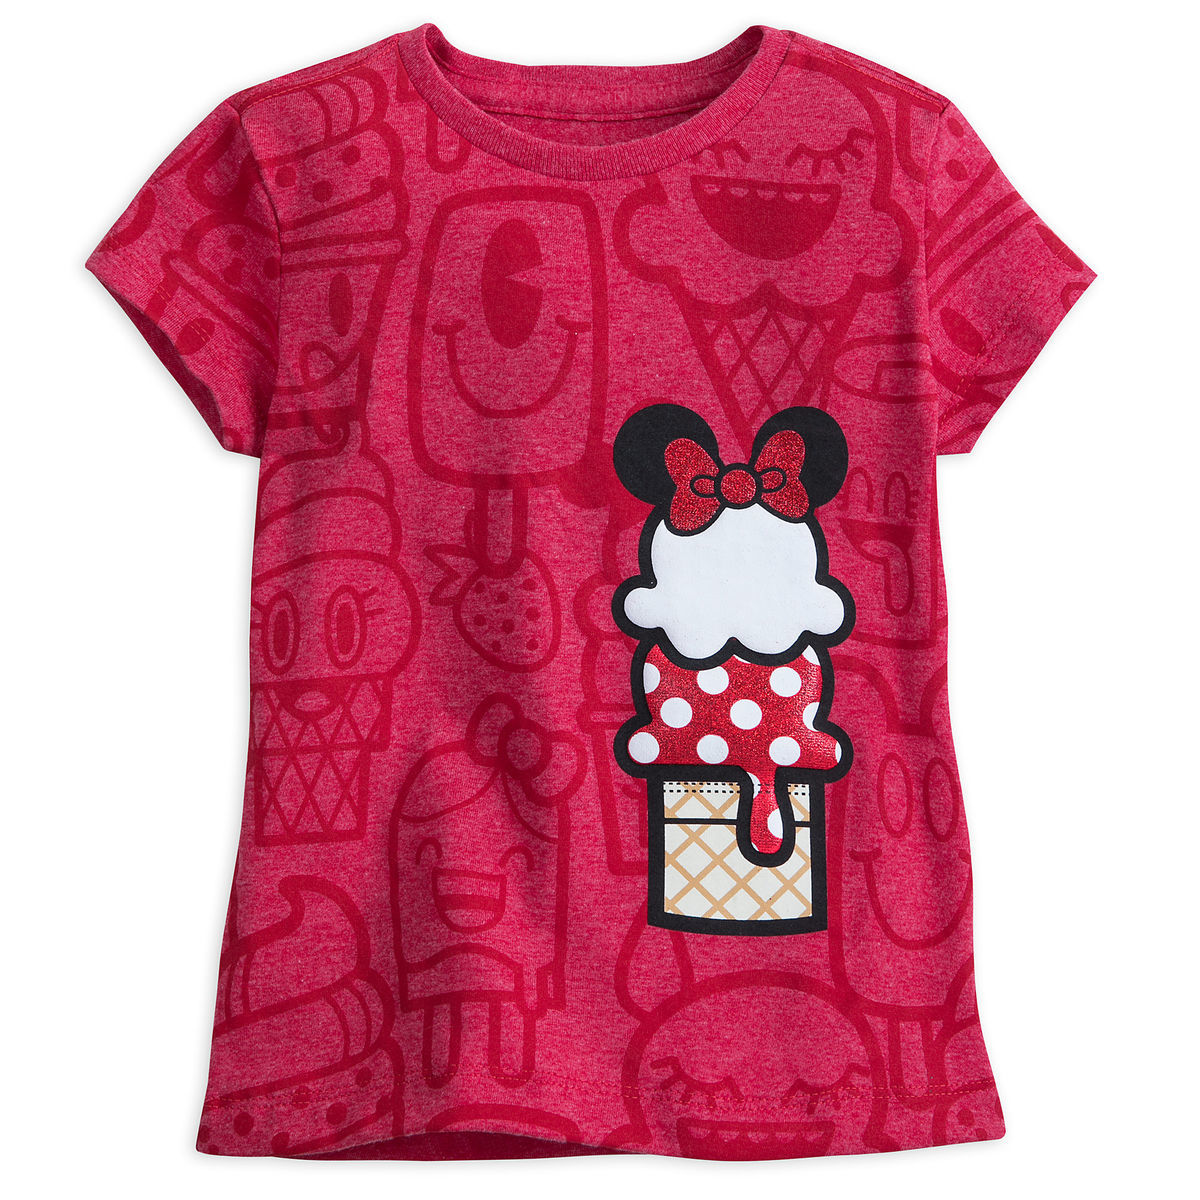 minnie mouse ice cream cone t shirt for girls shopdisney